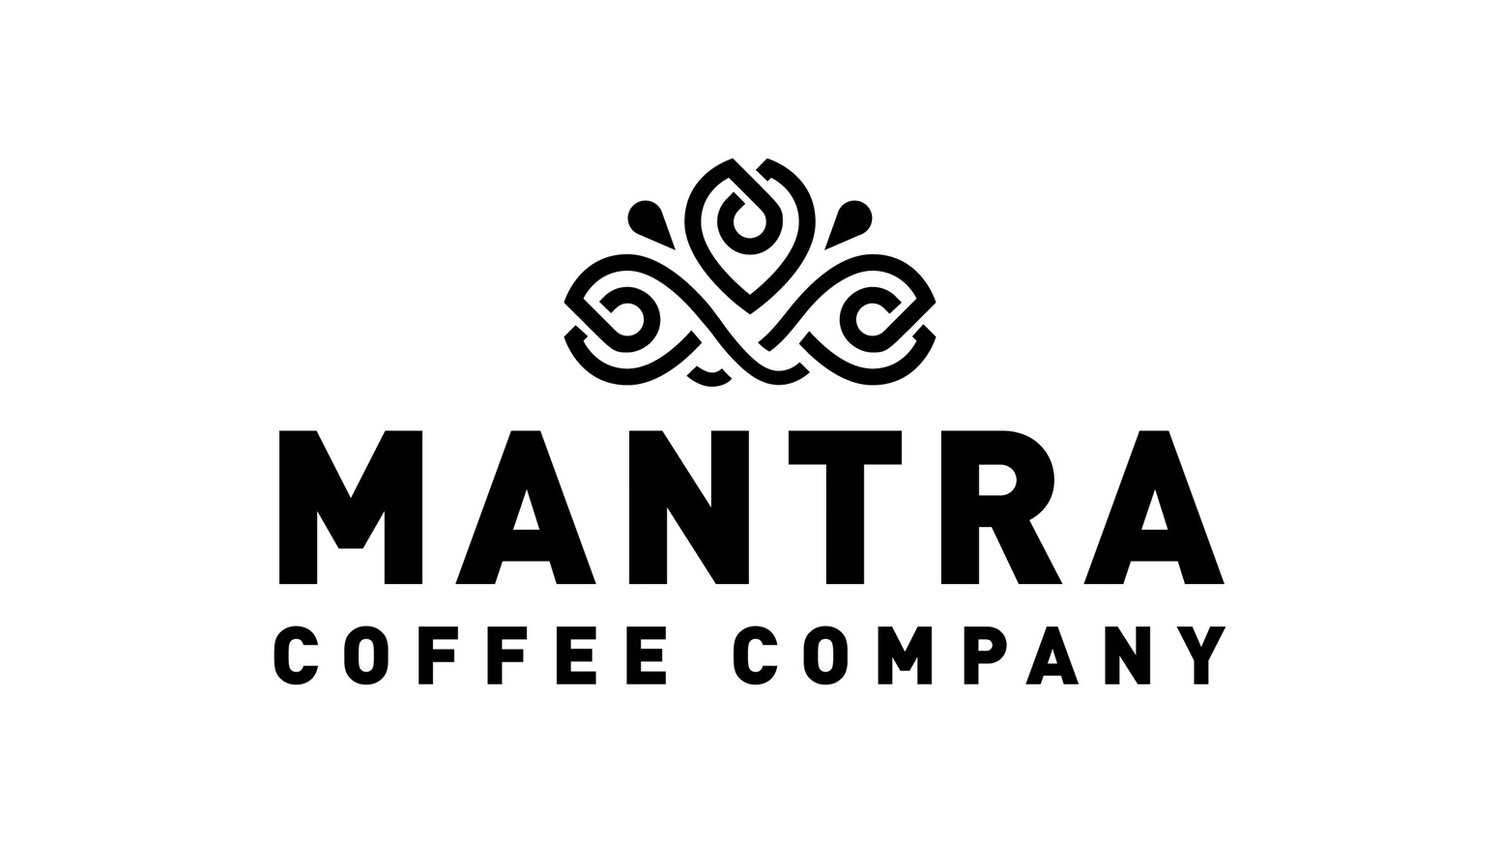 Mantra Coffee Company